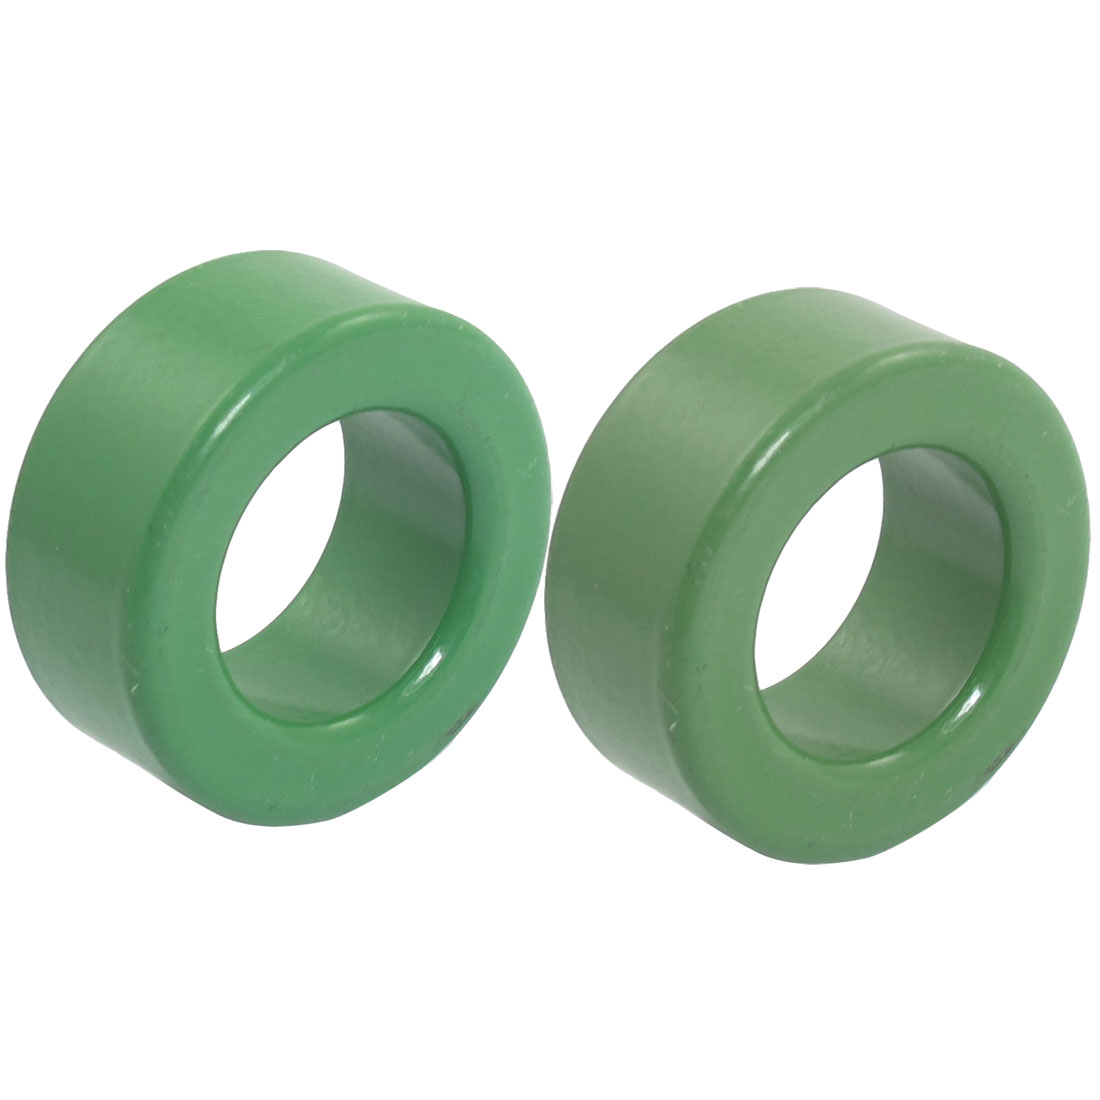 "2 Pieces Green Iron Toroid Ferrite Core 1.2"" x 0.7"" x 0.5"""